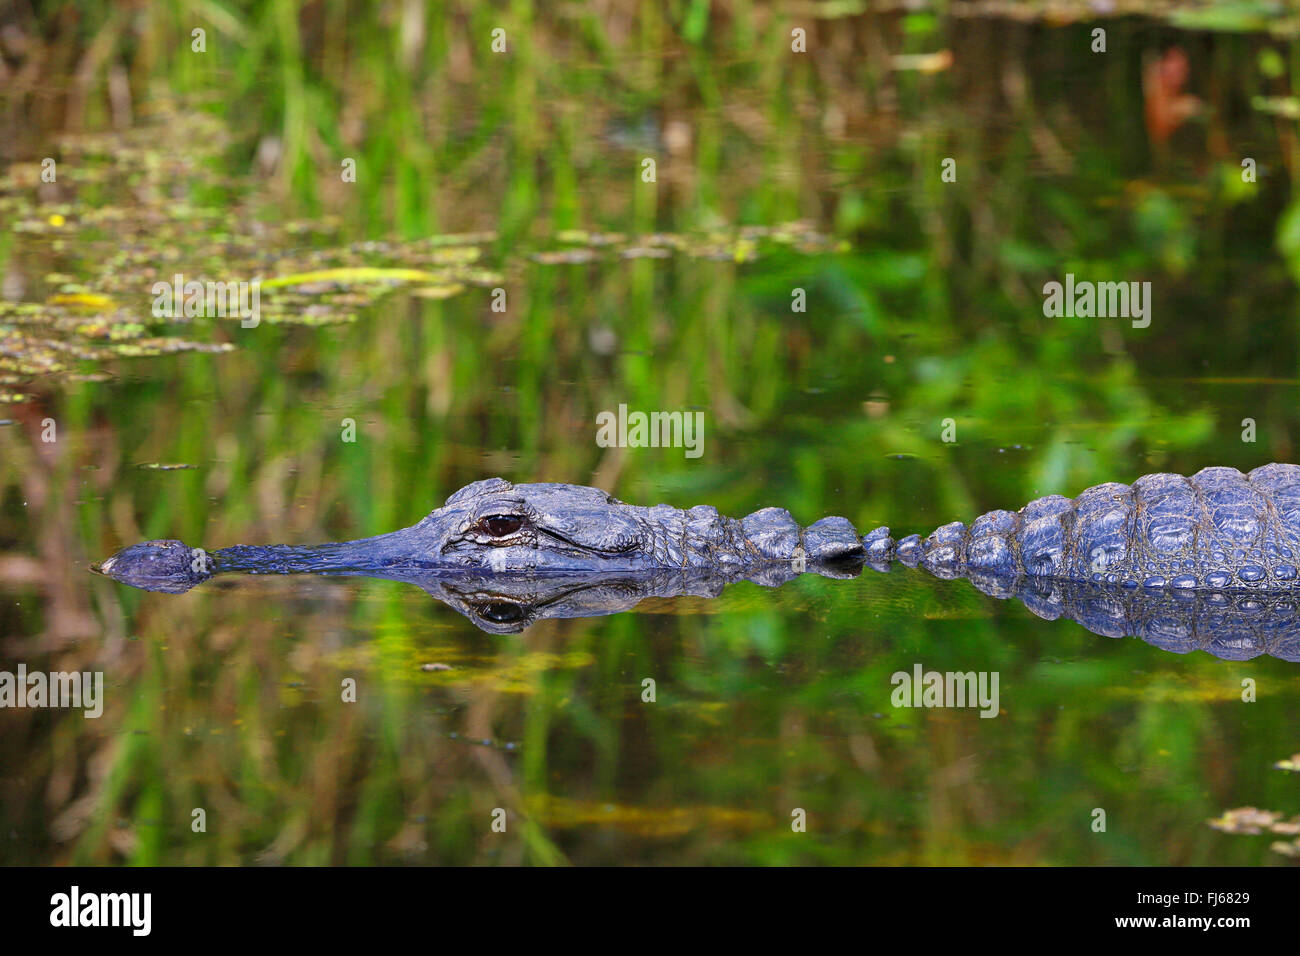 American alligator (Alligator mississippiensis), portraet with mirror image, USA, Florida, Shark Valley Everglades - Stock Image